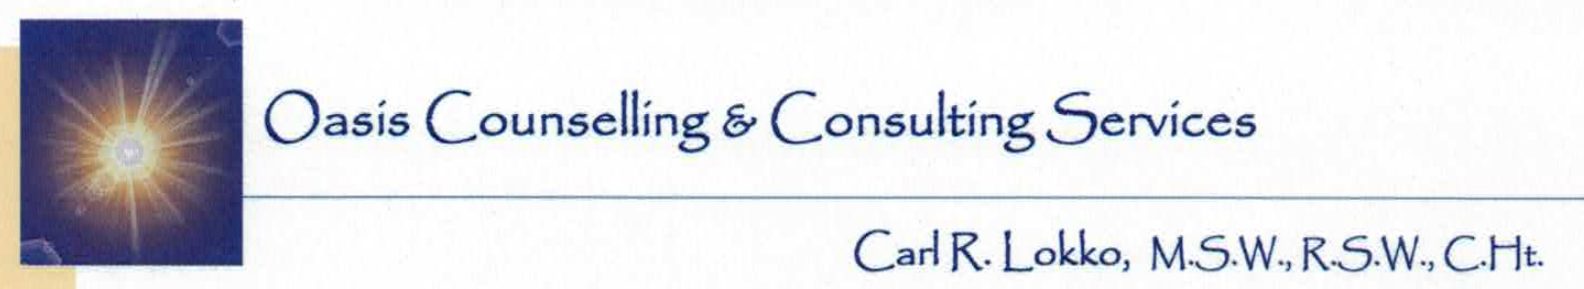 Oasis Counselling  & Consulting Services